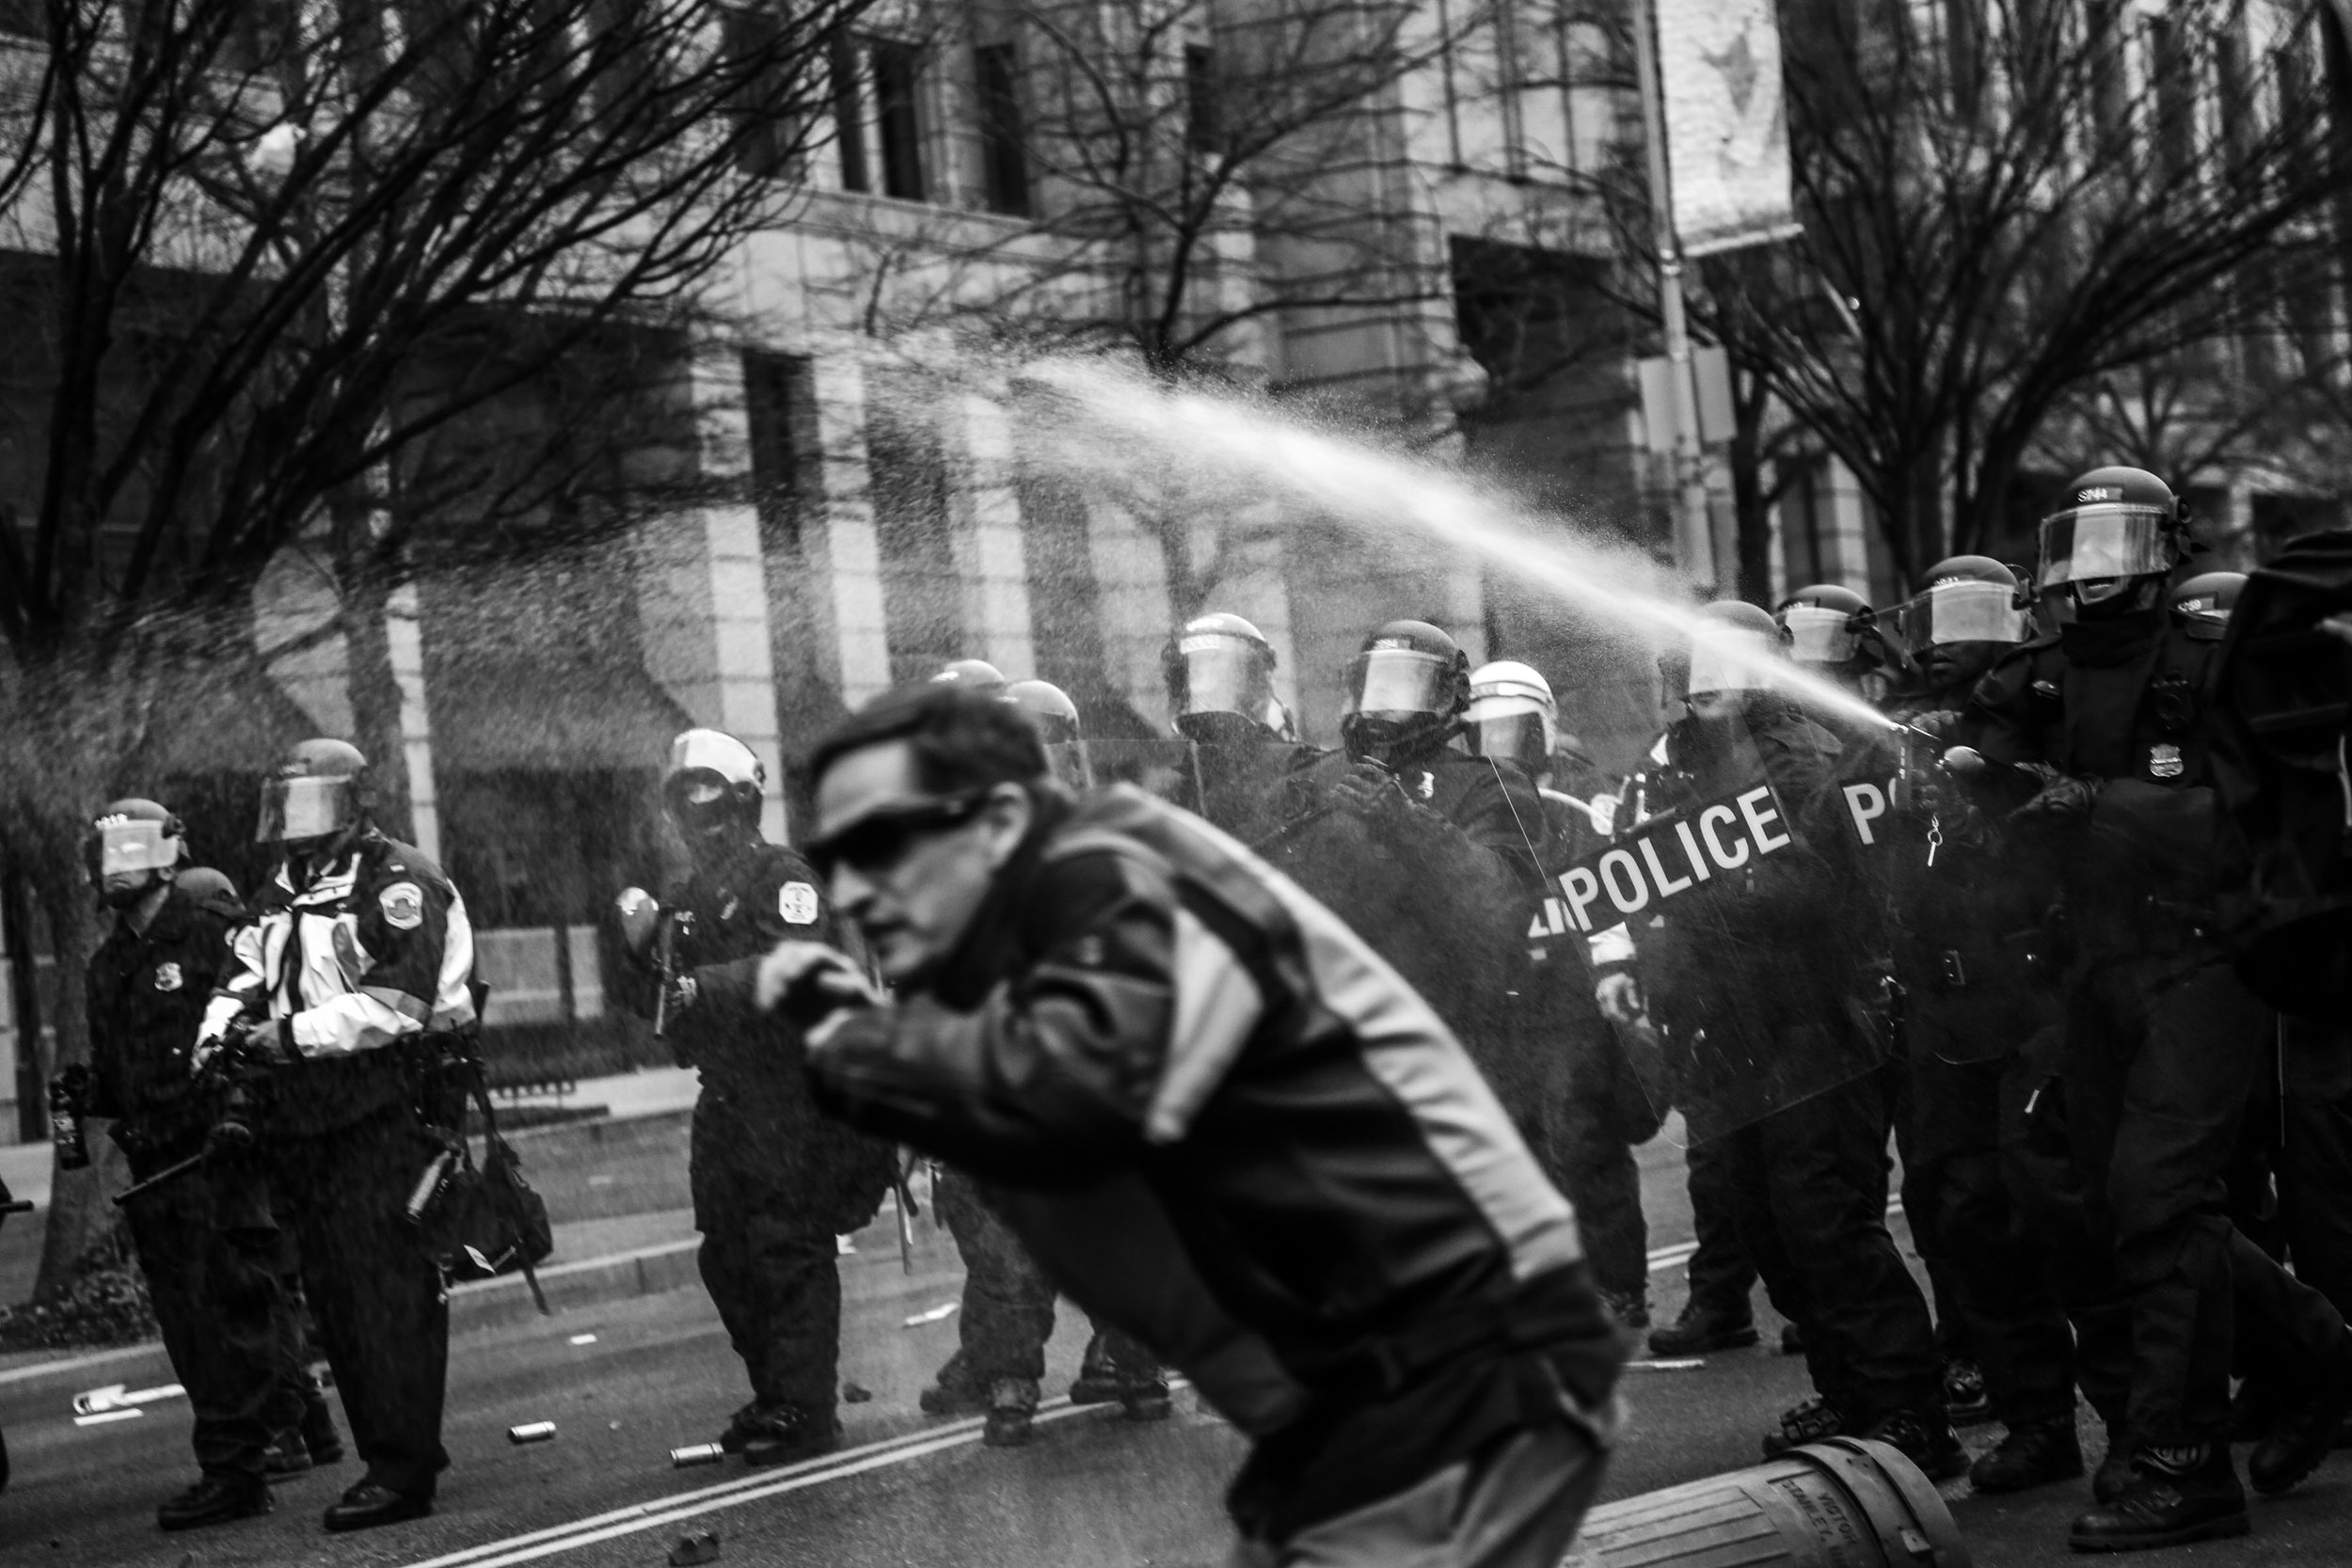 Police officers wearing riot gear spray protesters with pepper spray on K St. N.W.,hours after President Trump was sworn in as the 45th US President.